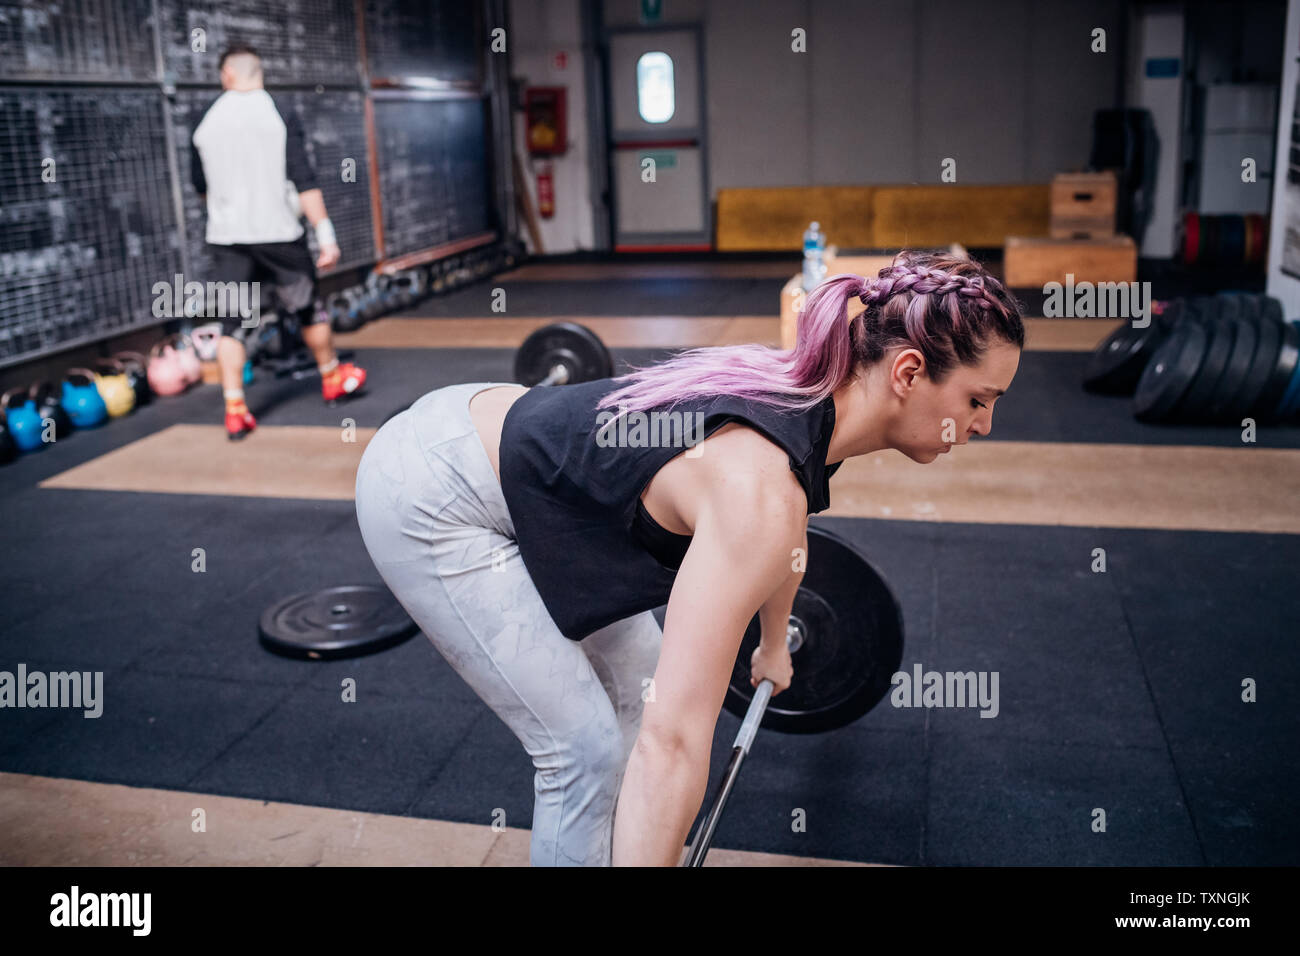 Young woman lifting barbell in gym - Stock Image